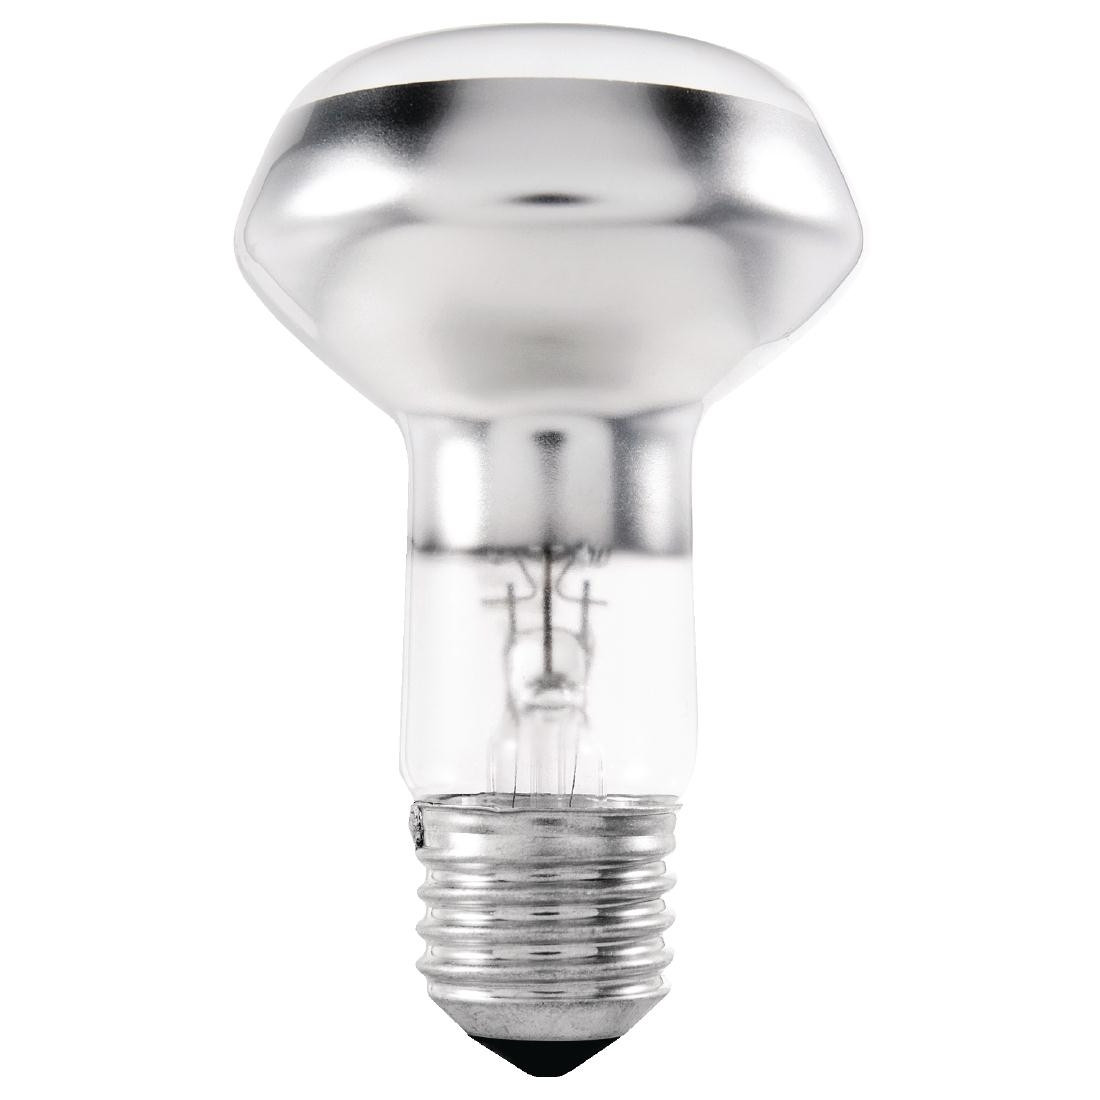 Halogen Spotlight Bulbs Status Halogen Reflector Spotlight Bulb Small Edison Screw R50 28w